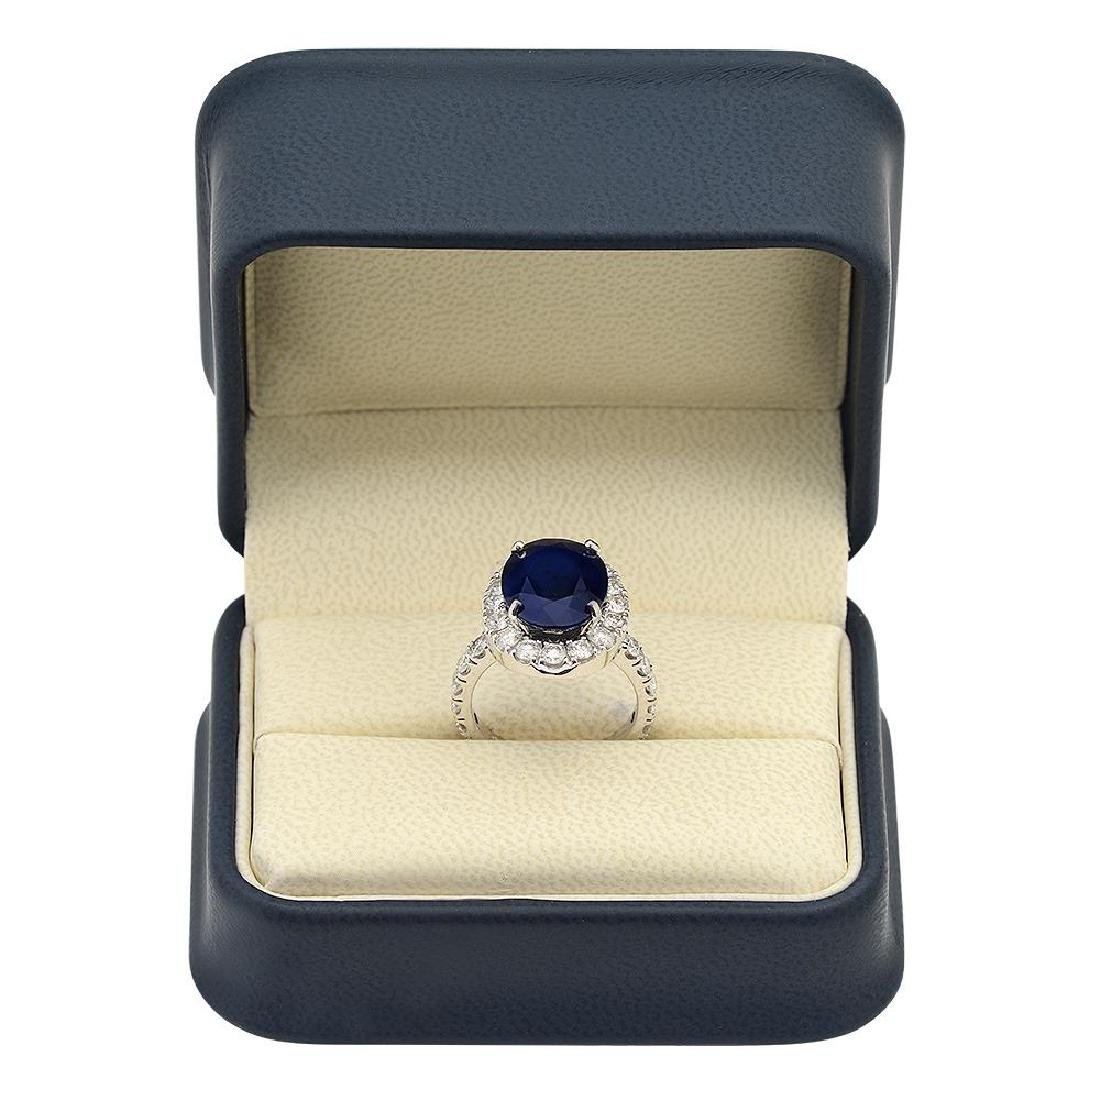 14K Gold 8.00ct Sapphire 2.00ct Diamond Ring - 4